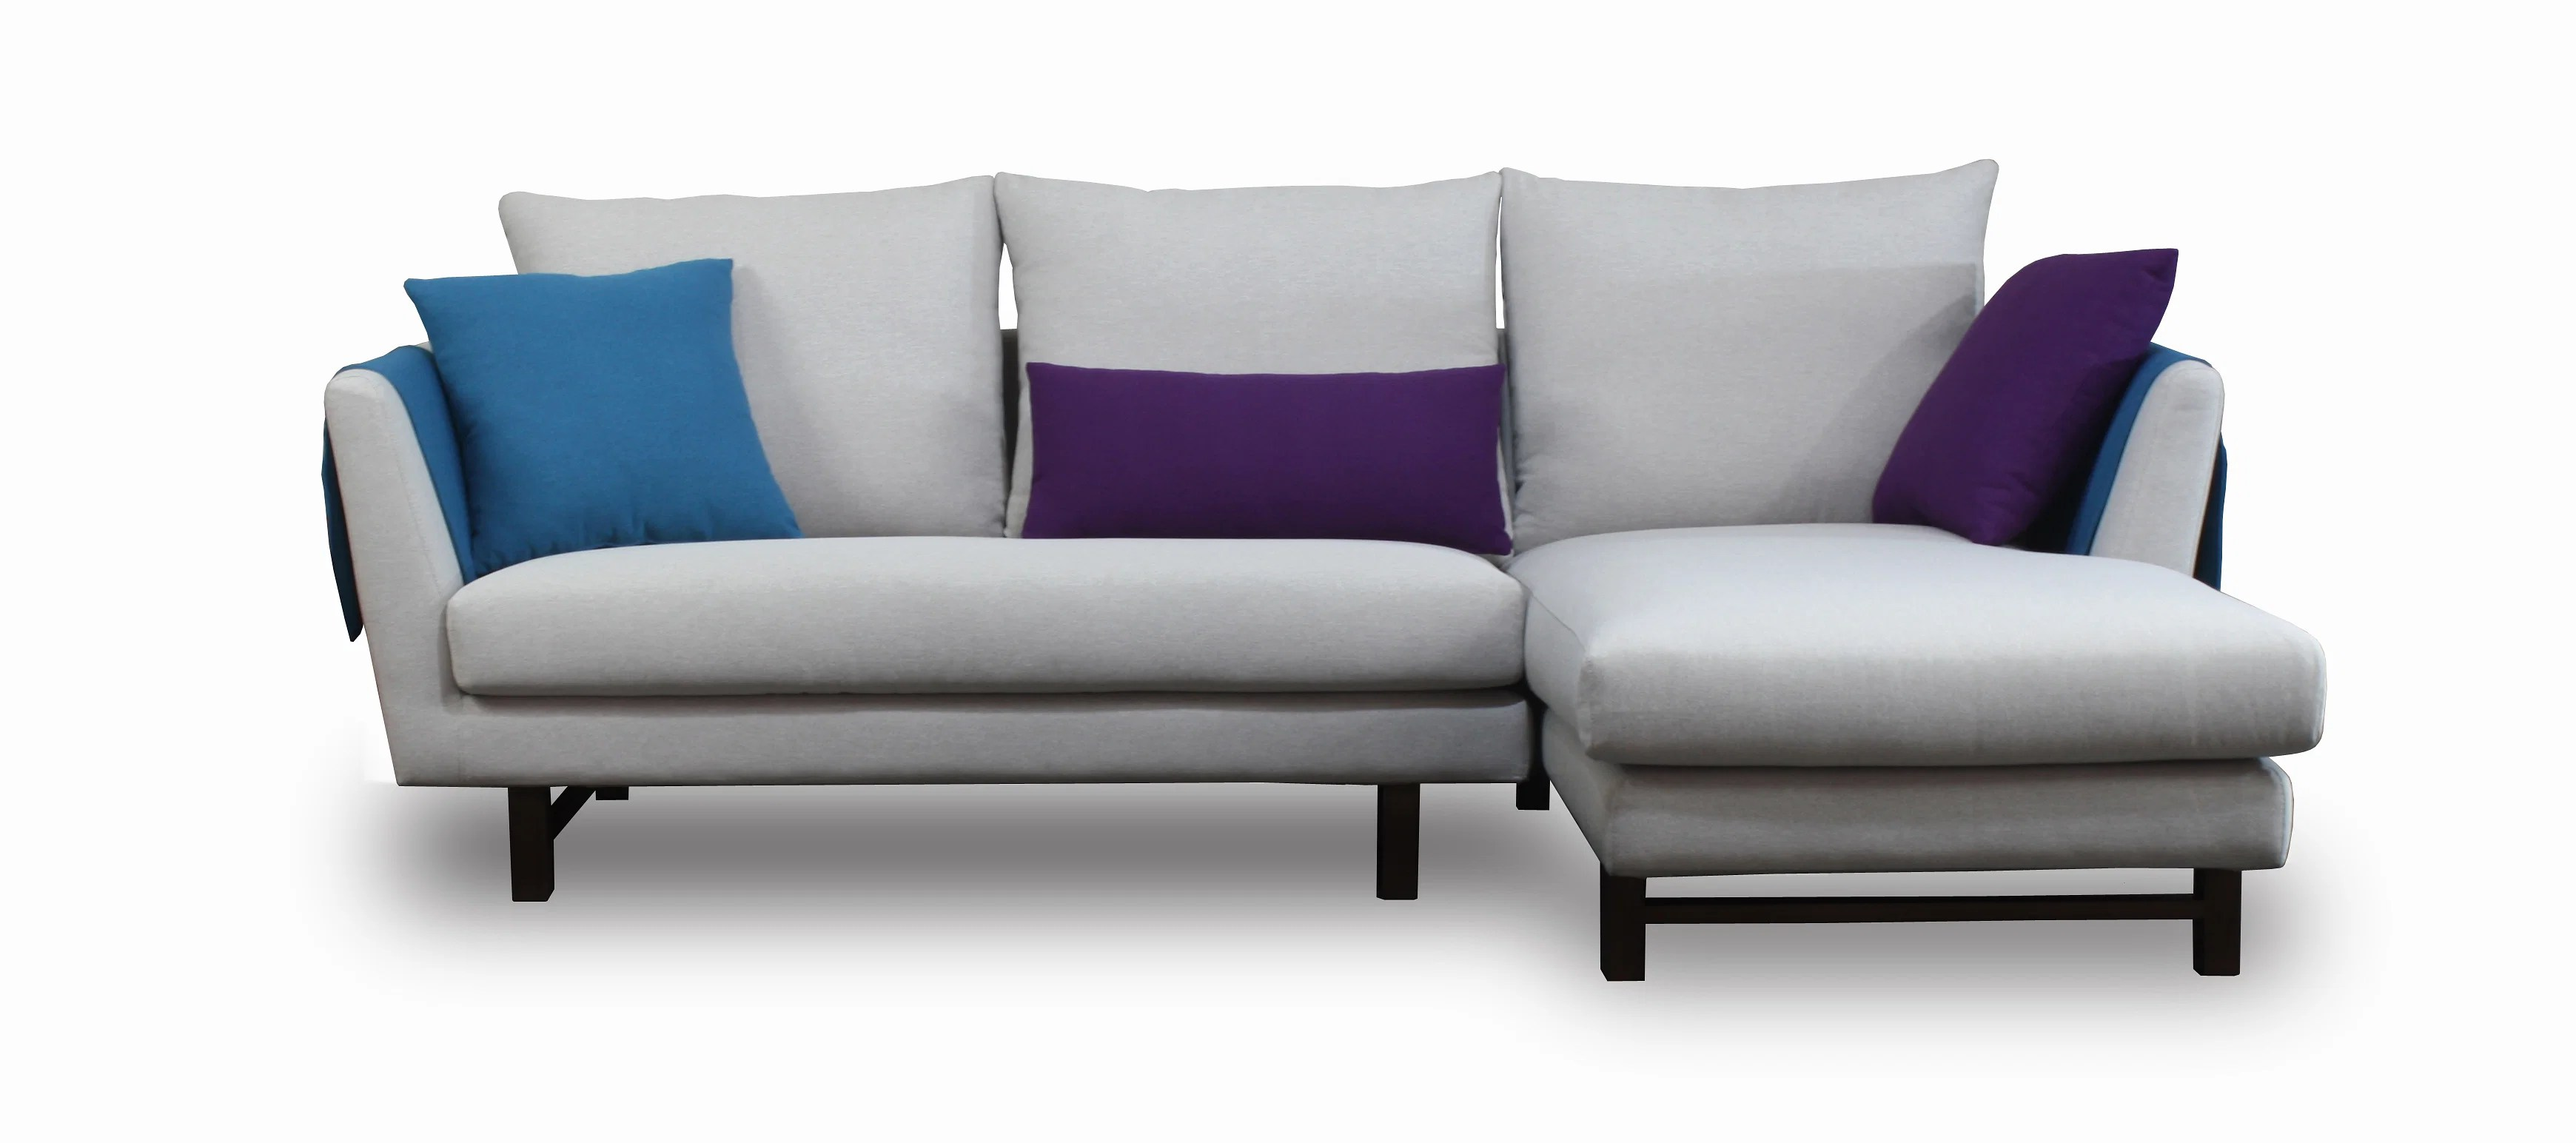 sleek sofa sets for small flats in mumbai nubuck leather protector get the scandi look at home with these furniture pieces